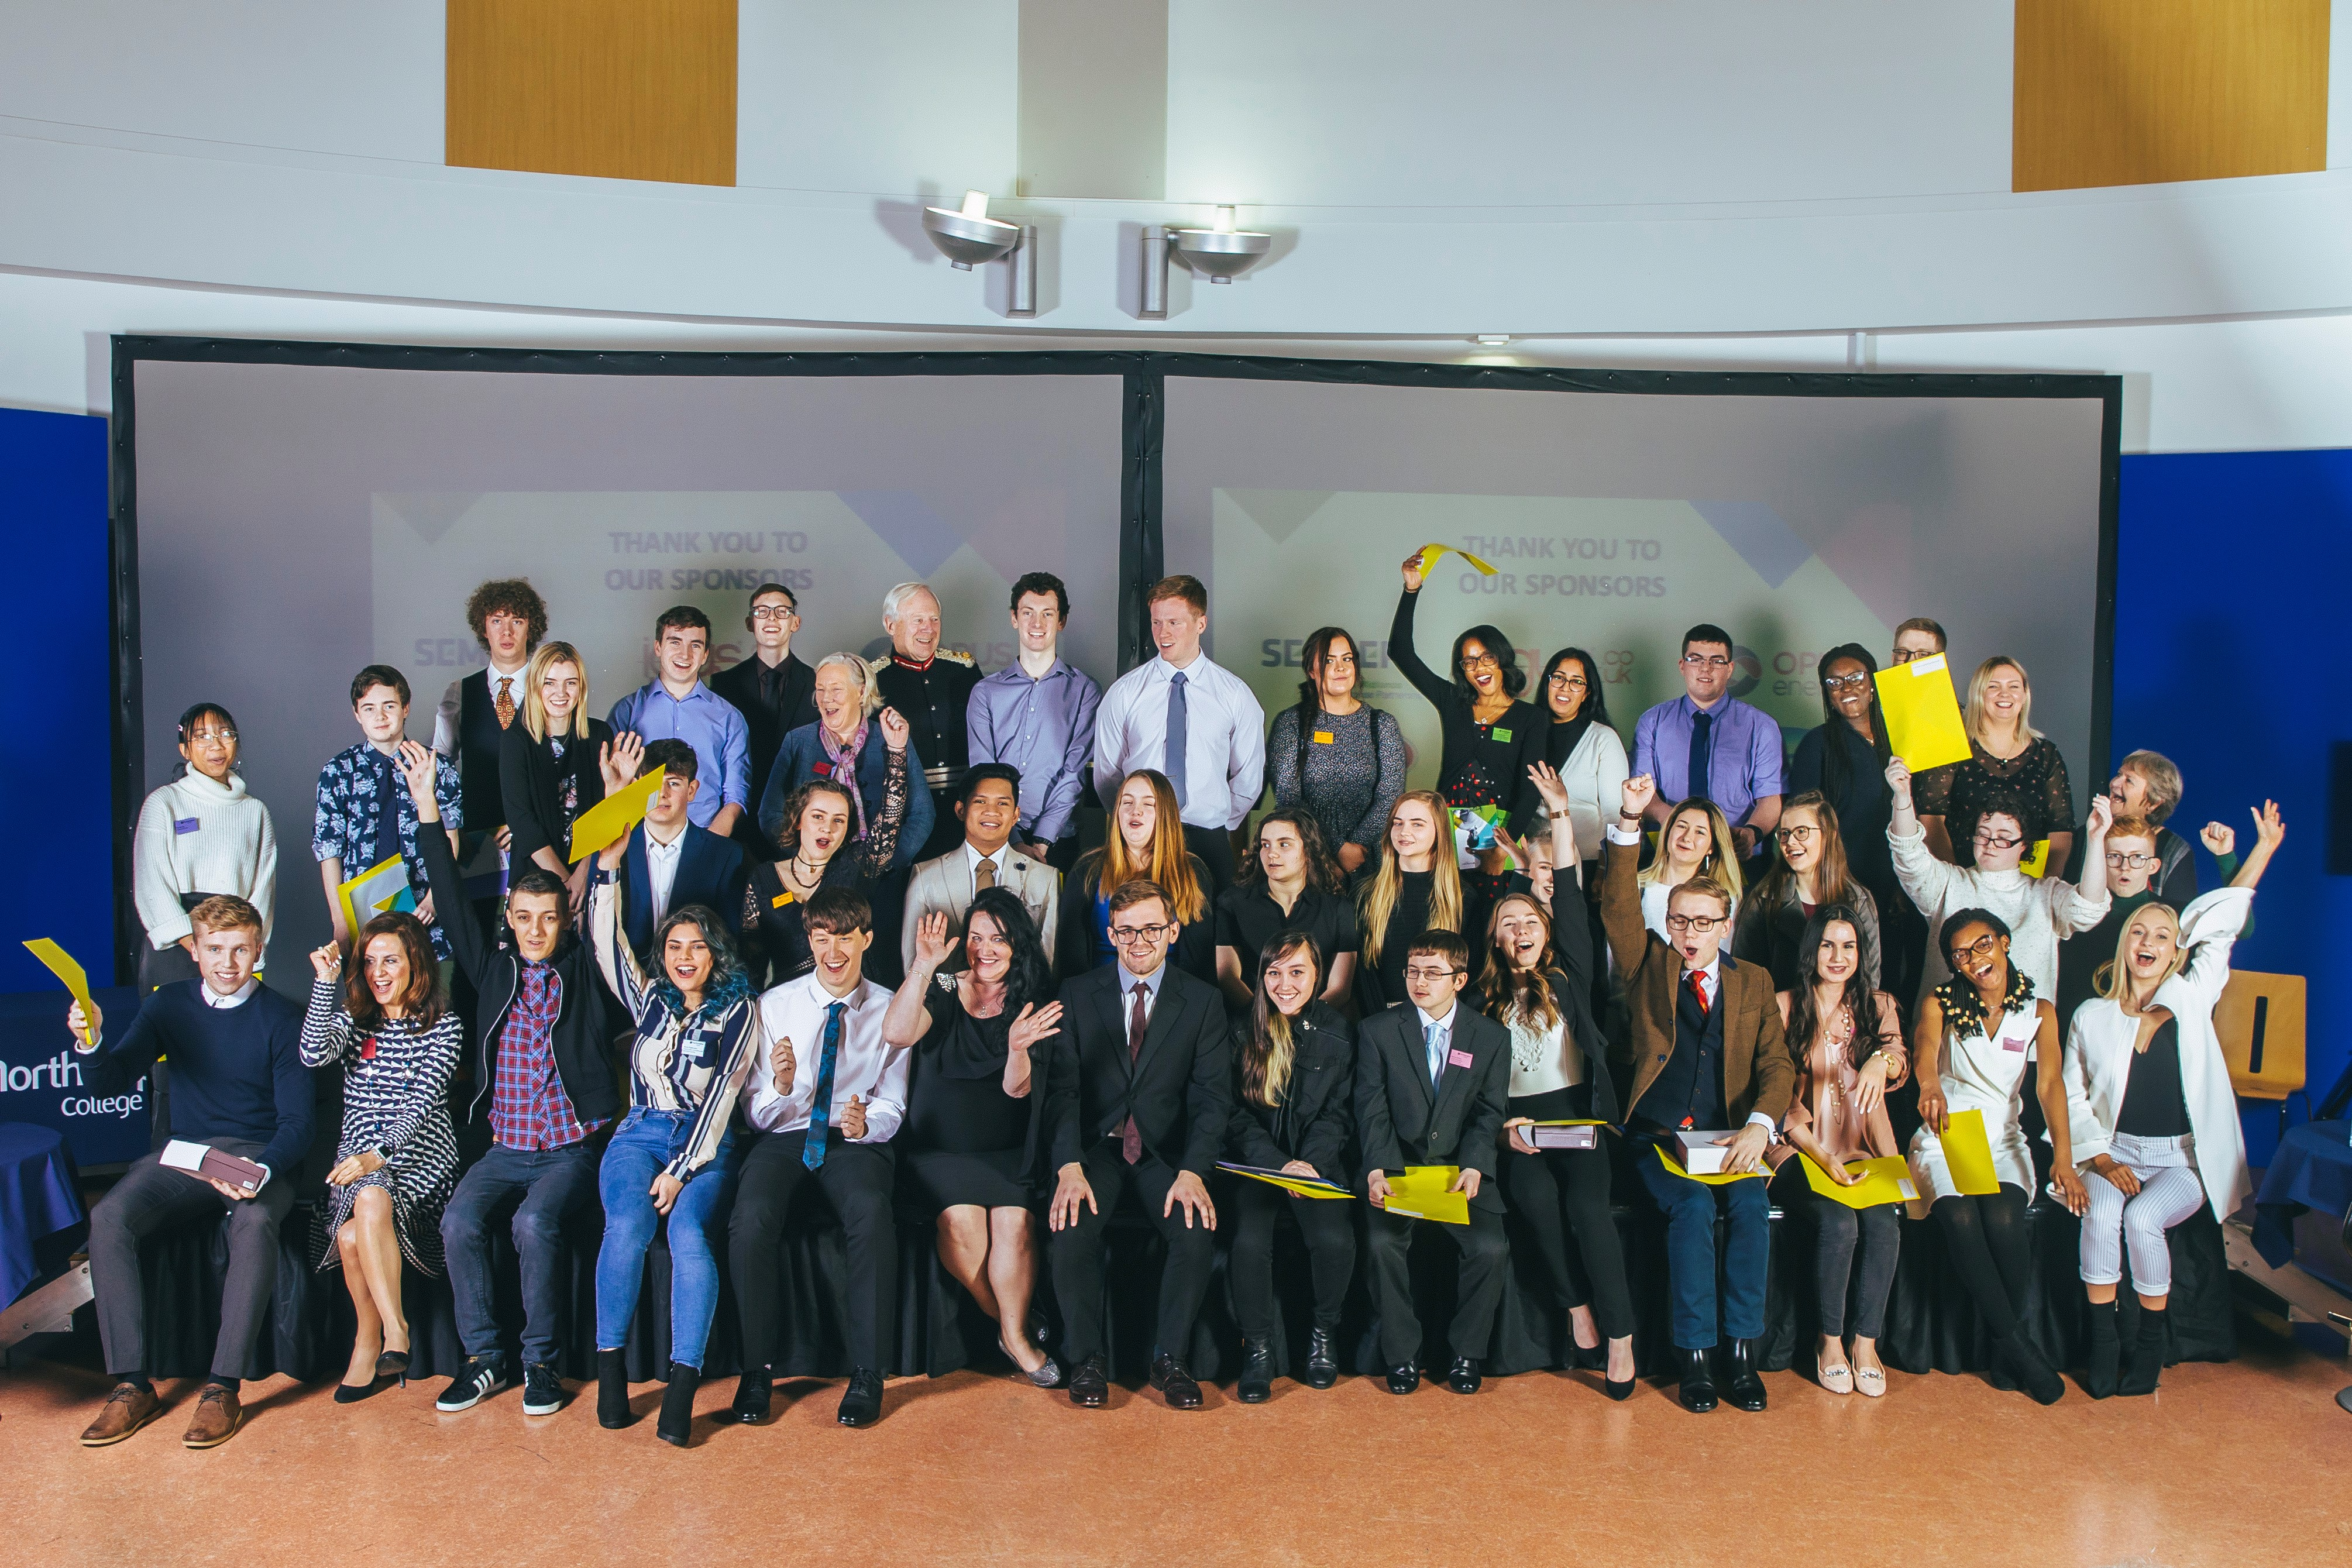 Student success honoured at annual awards ceremony